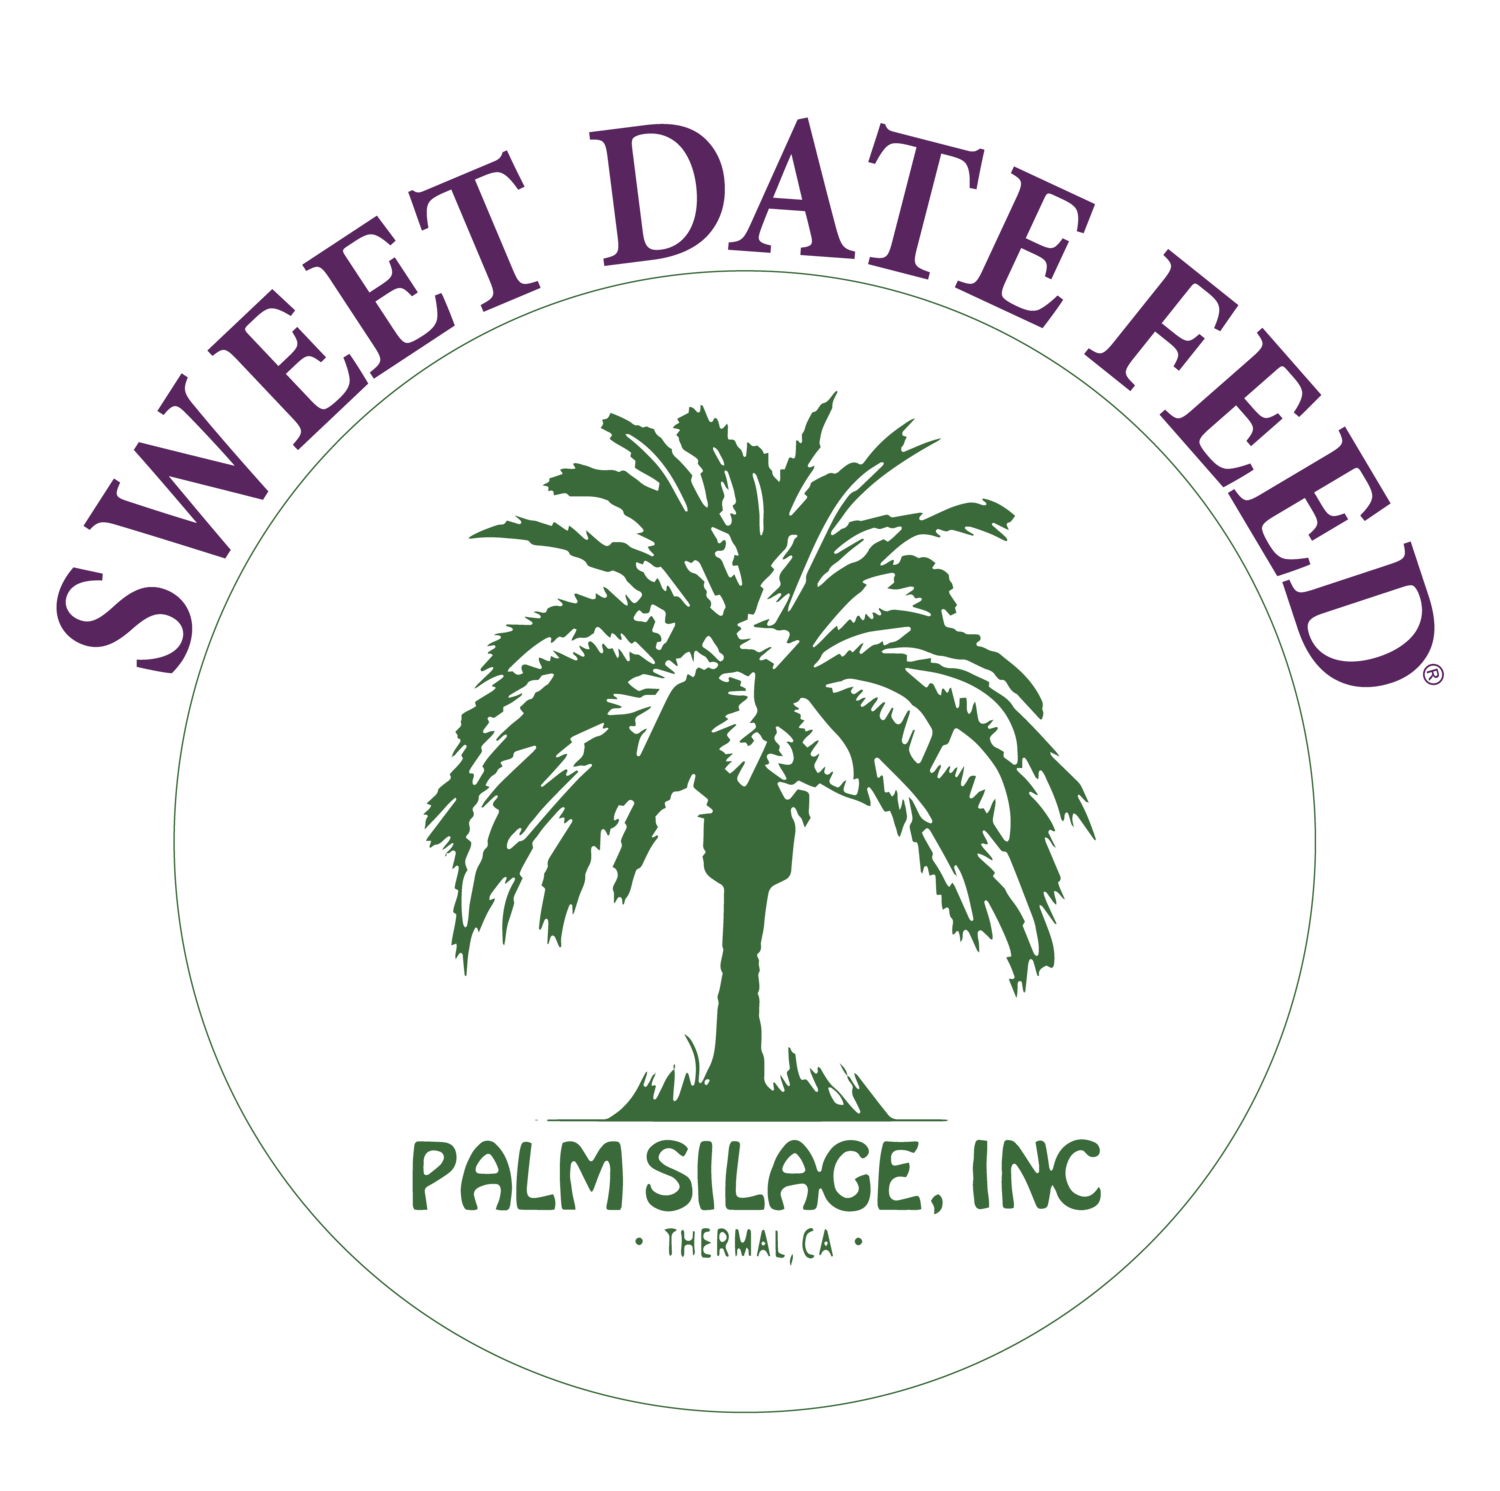 Palm Silage, Inc